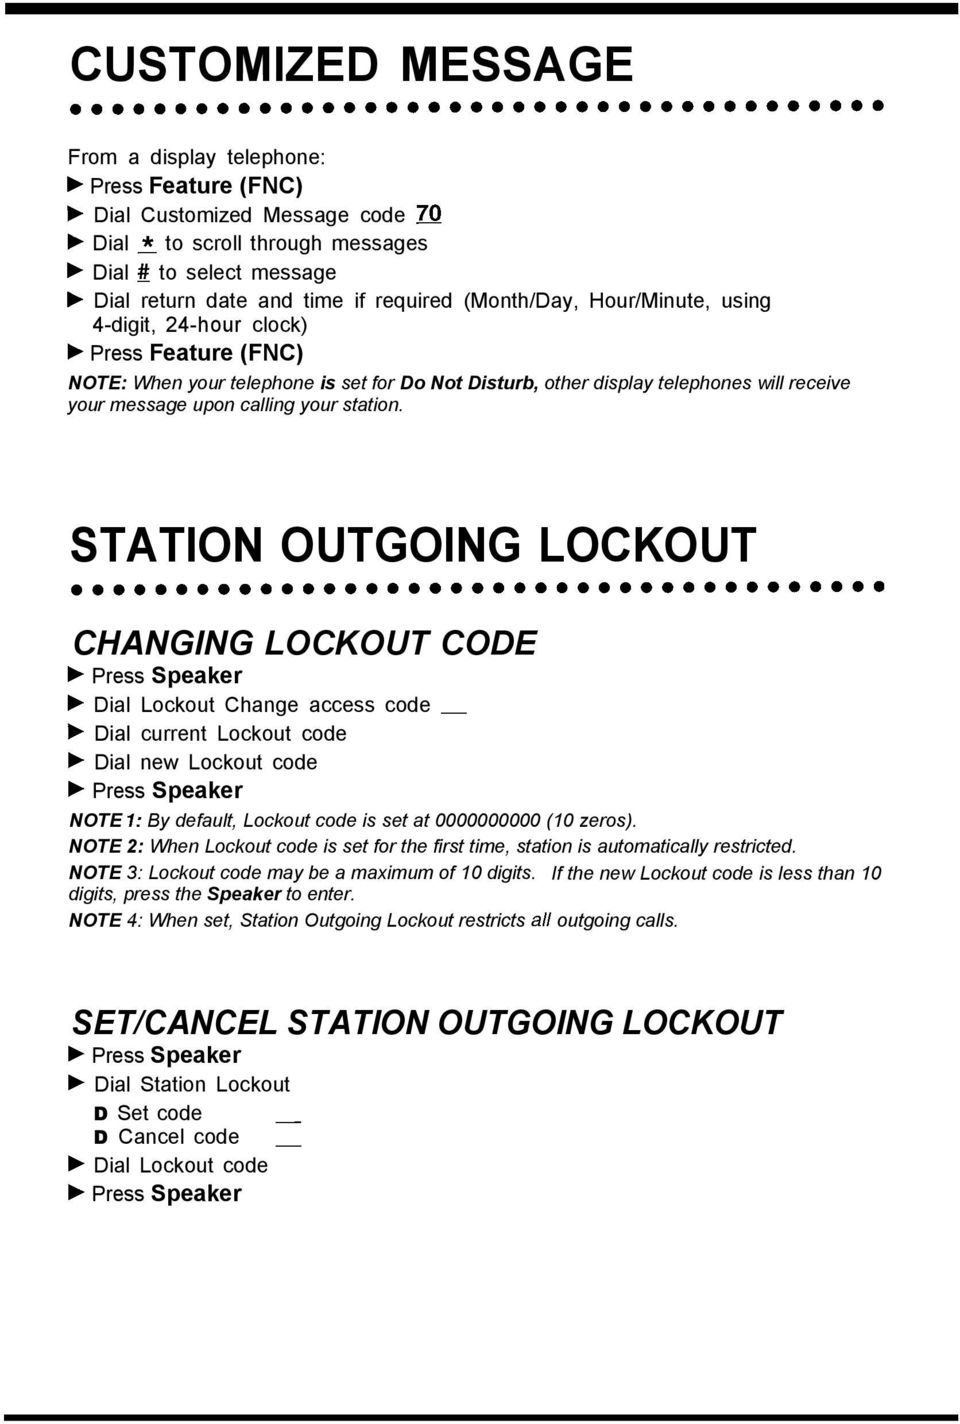 STATION OUTGOING LOCKOUT CHANGING LOCKOUT CODE b Dial Lockout Change access code _ b Dial current Lockout code b Dial new Lockout code NOTE I: By default, Lockout code is set at 0000000000 (10 zeros).